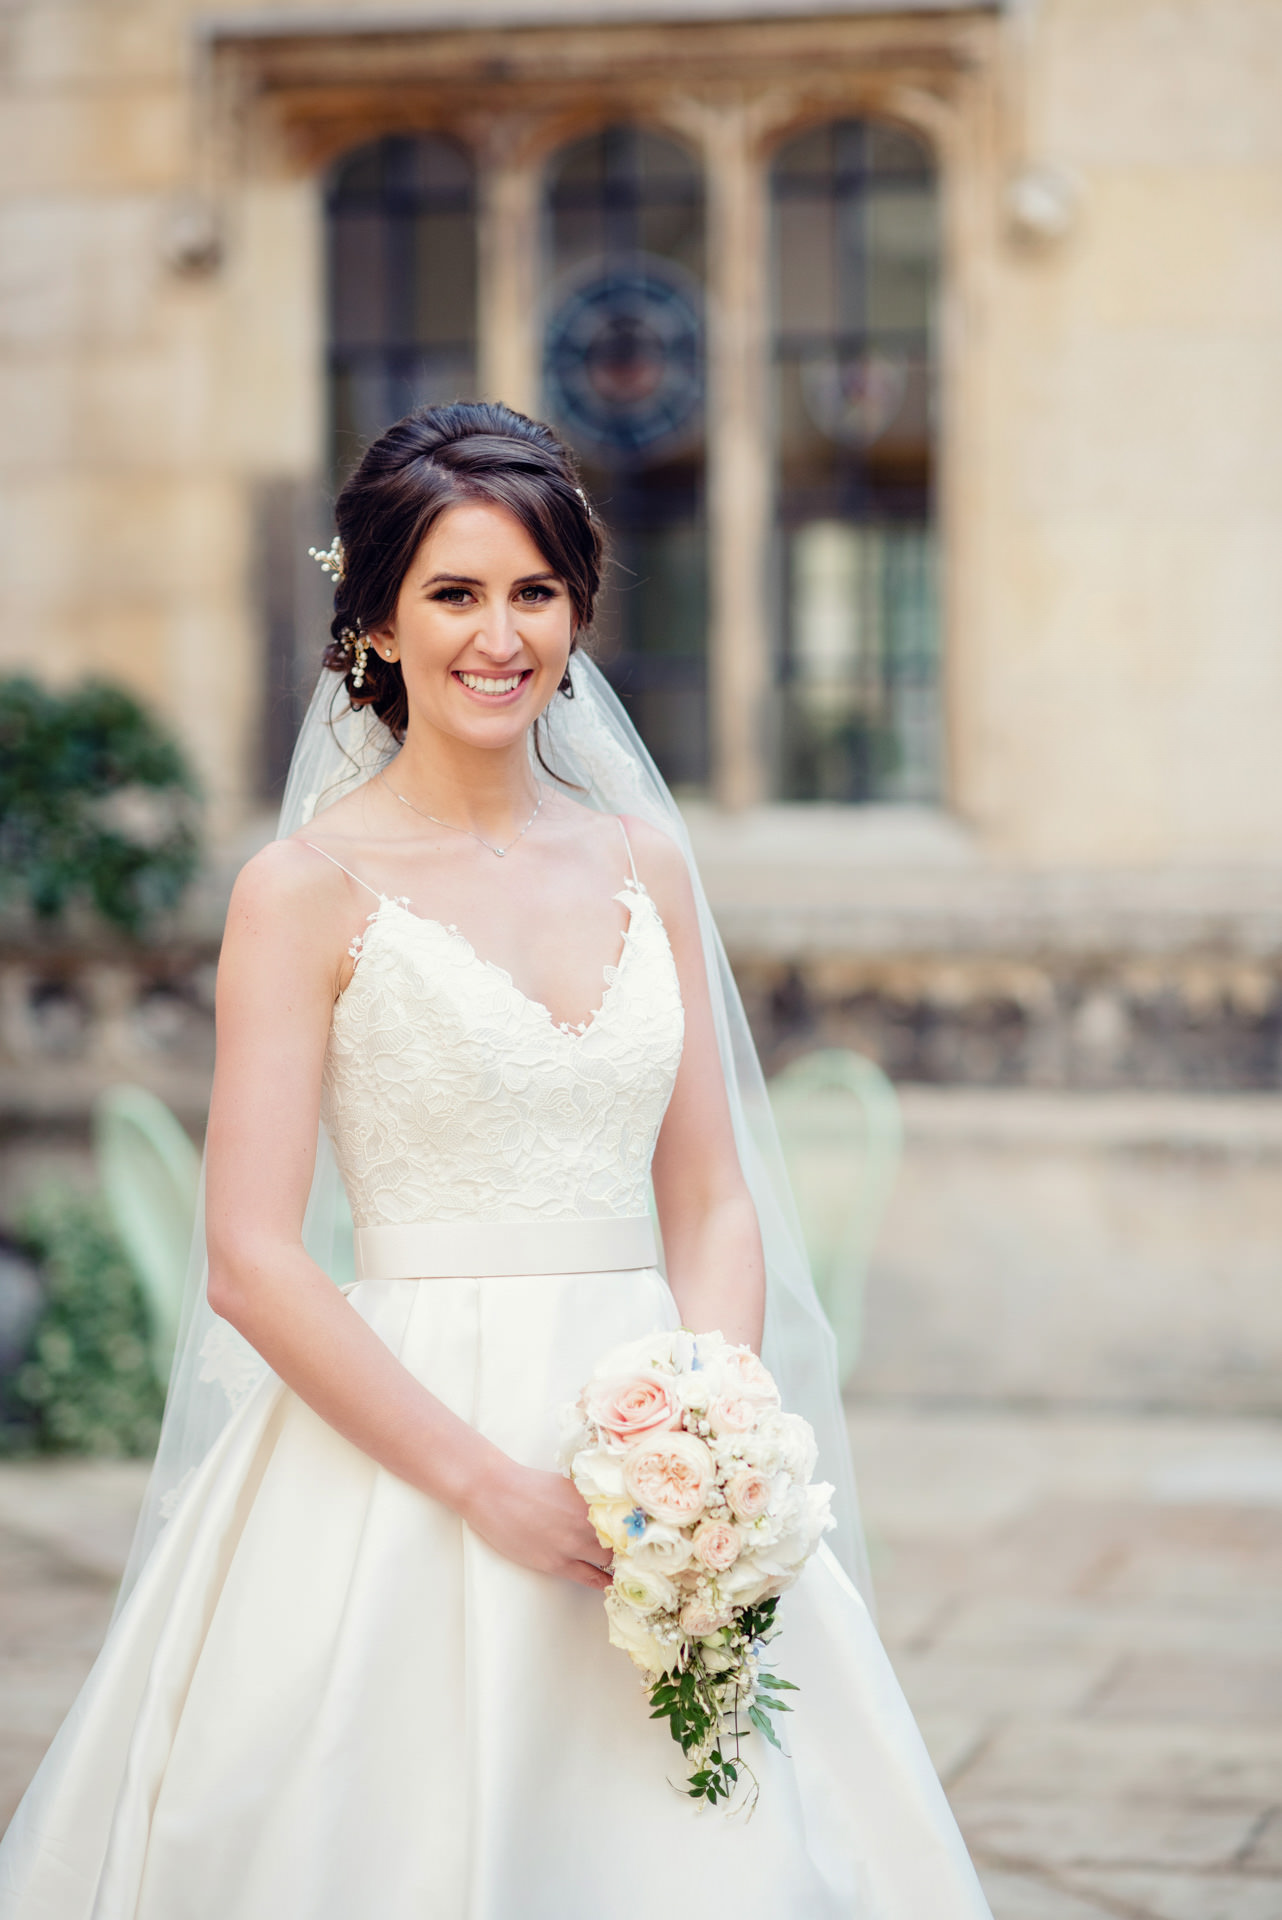 Our gorgeous Bride, complete with bouquet